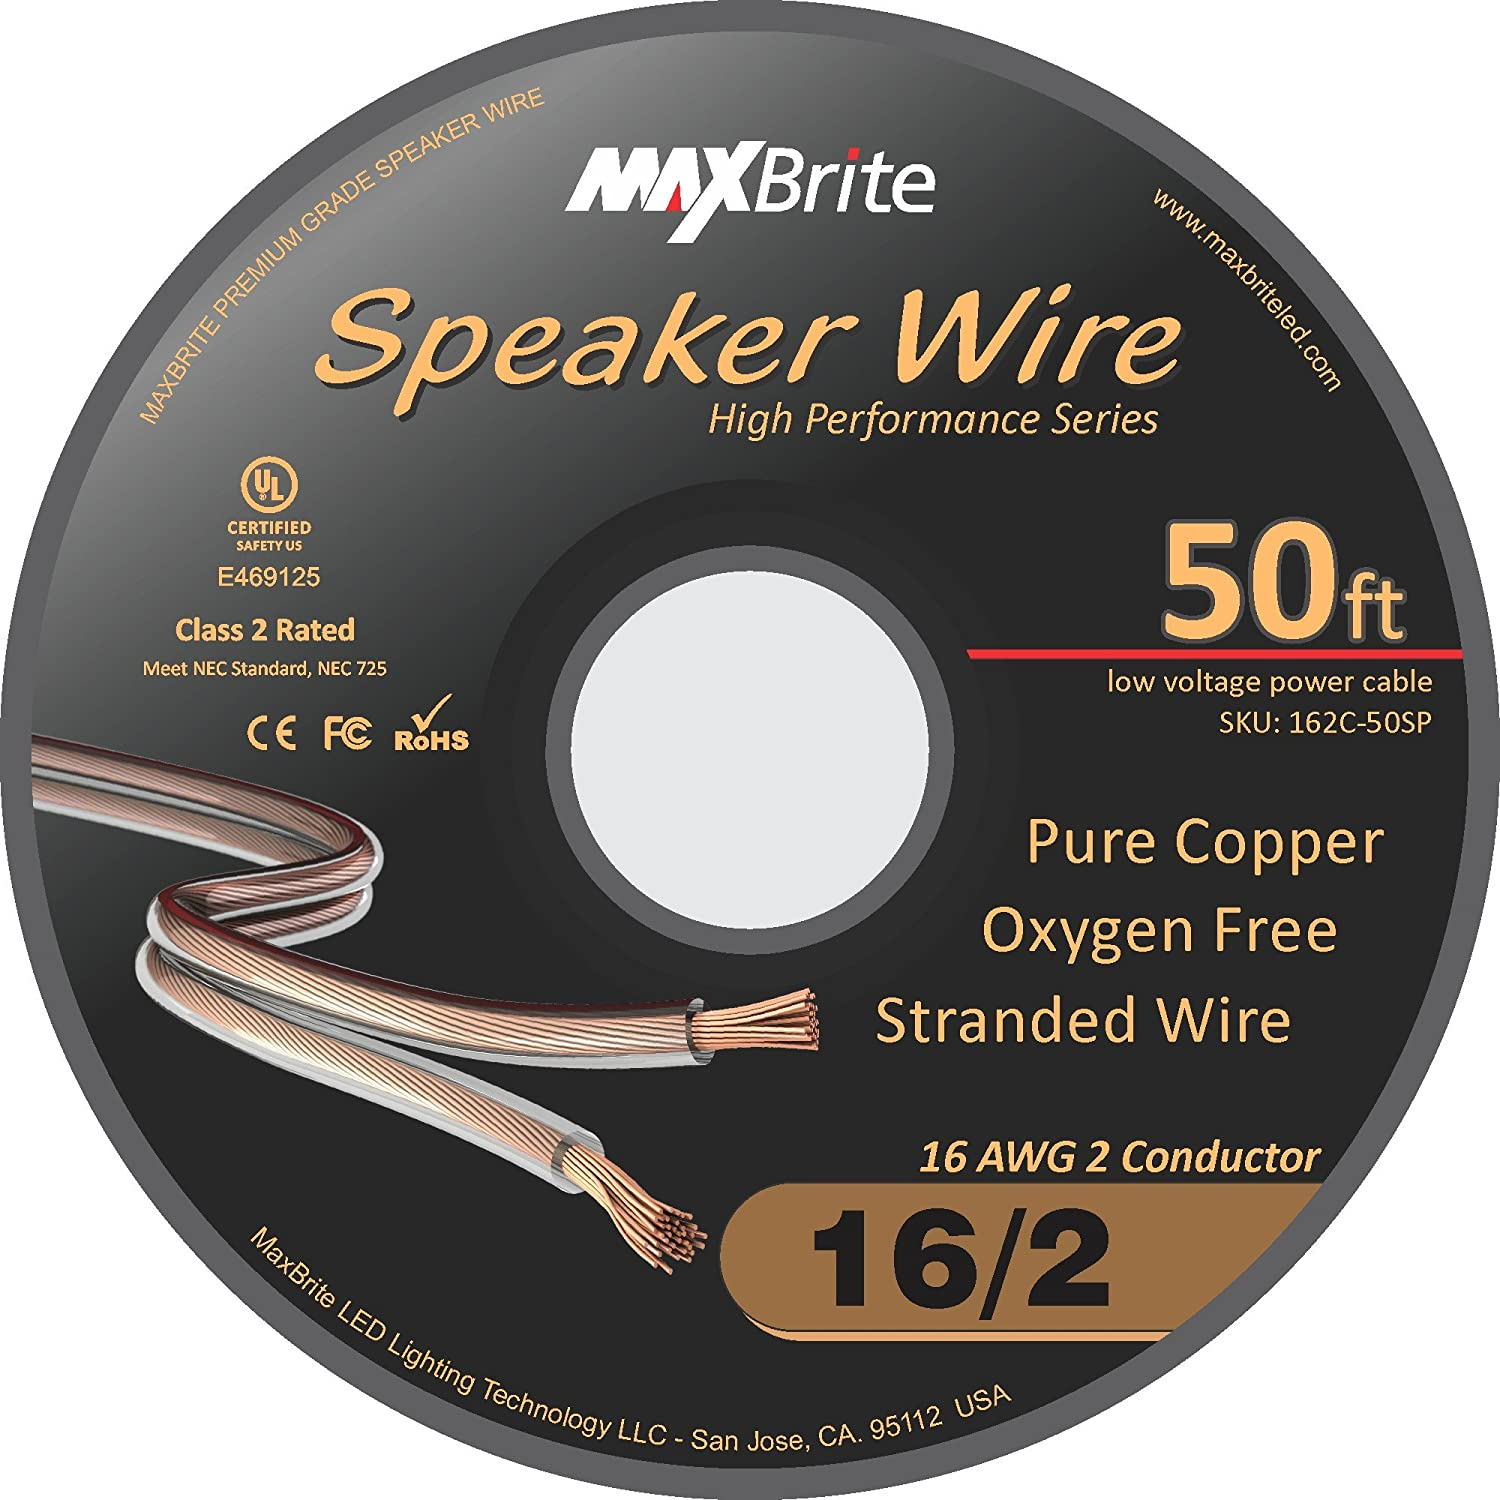 Amazon.com: High Performance 16 Gauge Speaker Wire, Oxygen Free Pure ...